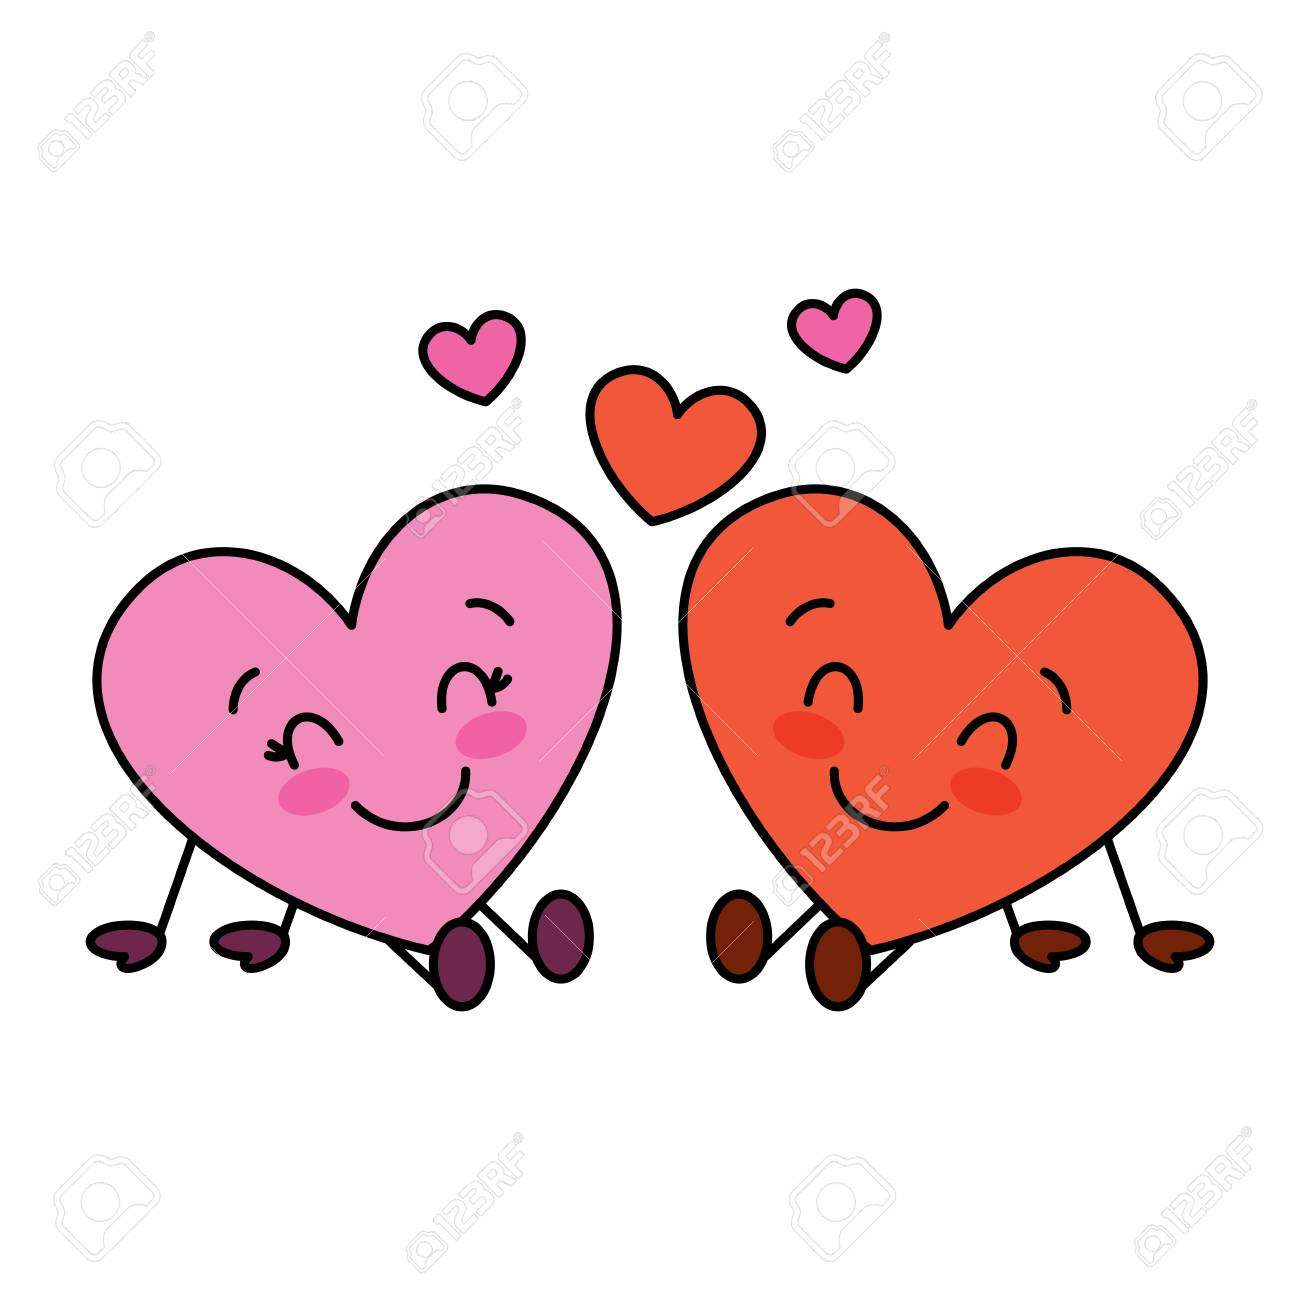 Cute Hearts Couple Sitting Cartoon Love Relationship Vector Illustration Royalty Free Cliparts Vectors And Stock Illustration Image 95753332